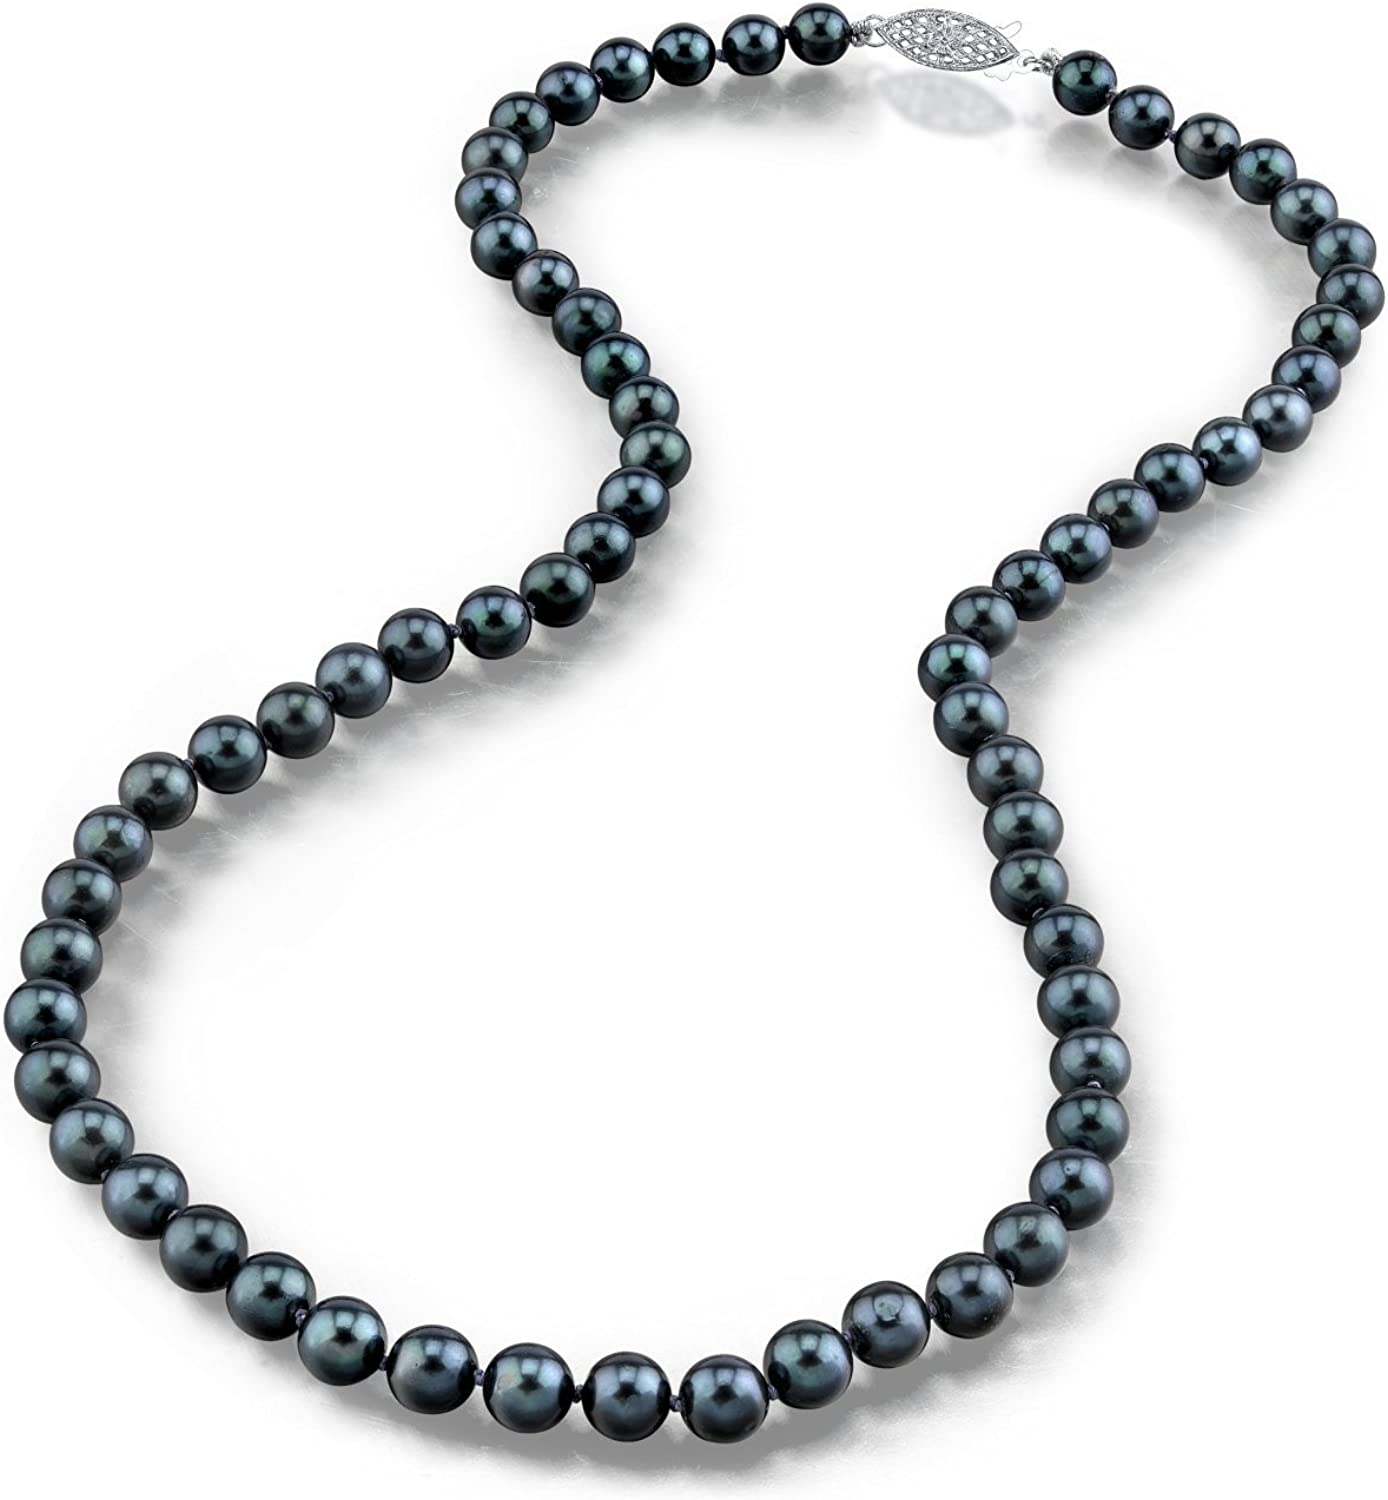 THE PEARL SOURCE 14K Gold 6.5-7.0mm Round Genuine Black Japanese Akoya Saltwater Cultured Pearl Necklace in 18